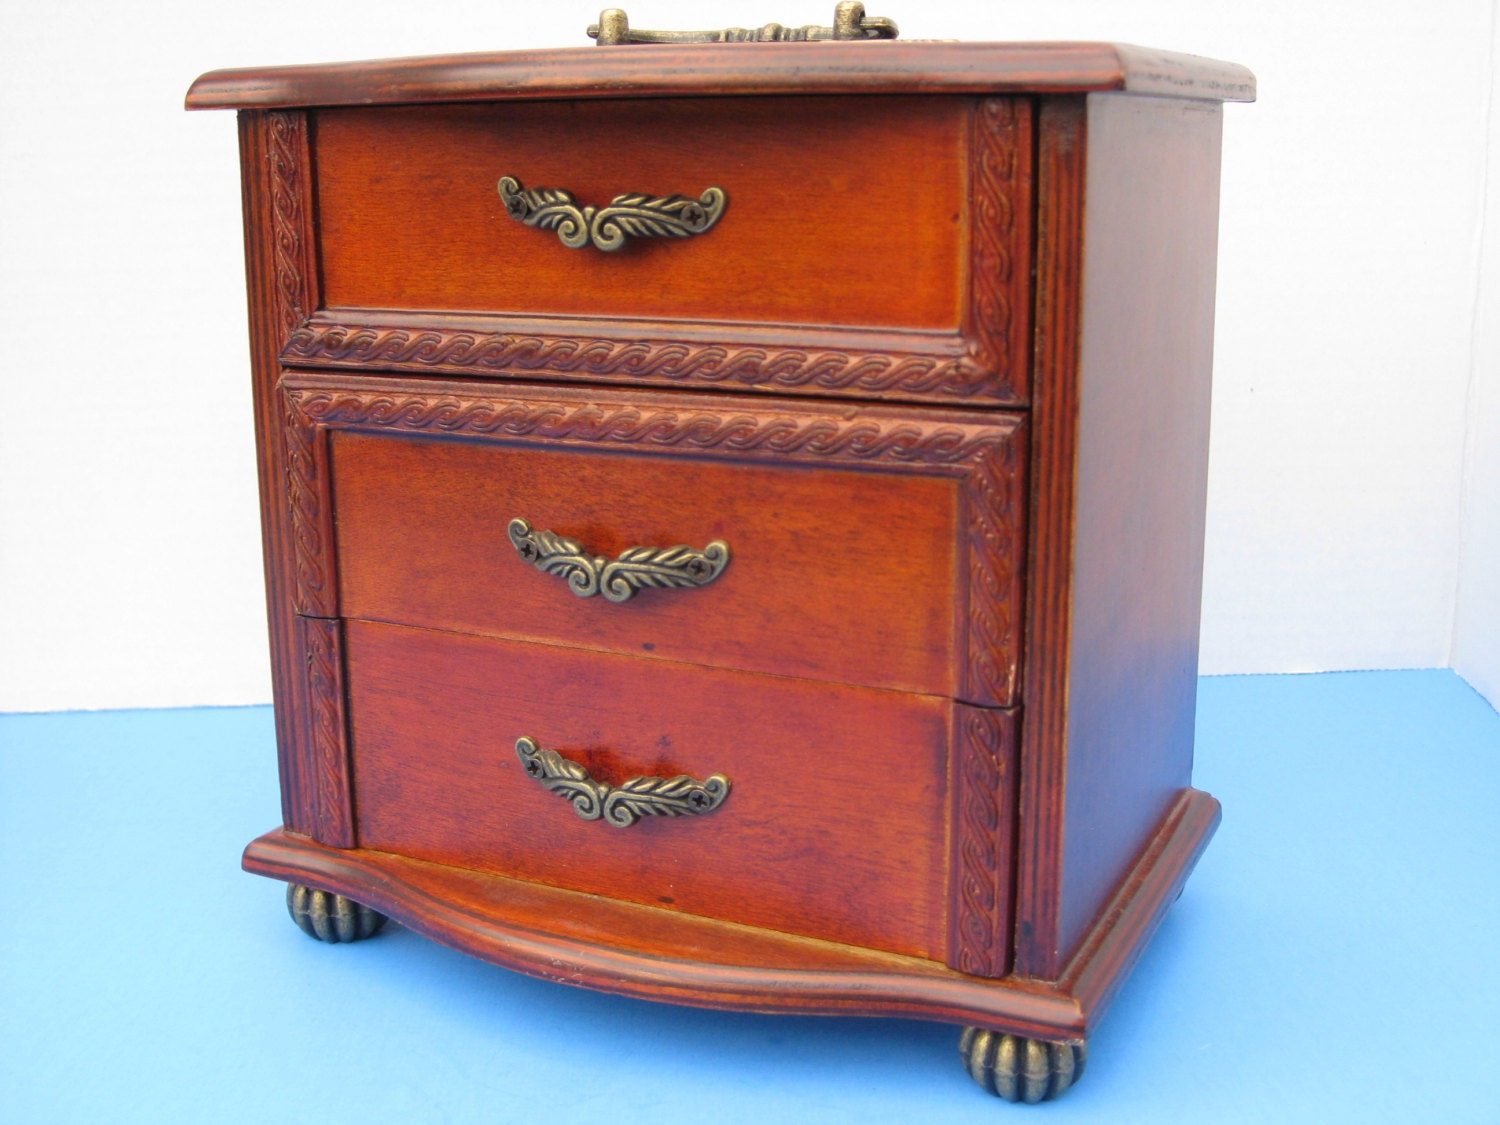 #027CC9 Vintage Small Handmade Wooden Chest Of Drawers Numbered Jewelry Box  with 1500x1125 px of Highly Rated Large Wooden Chest Of Drawers 11251500 picture/photo @ avoidforclosure.info